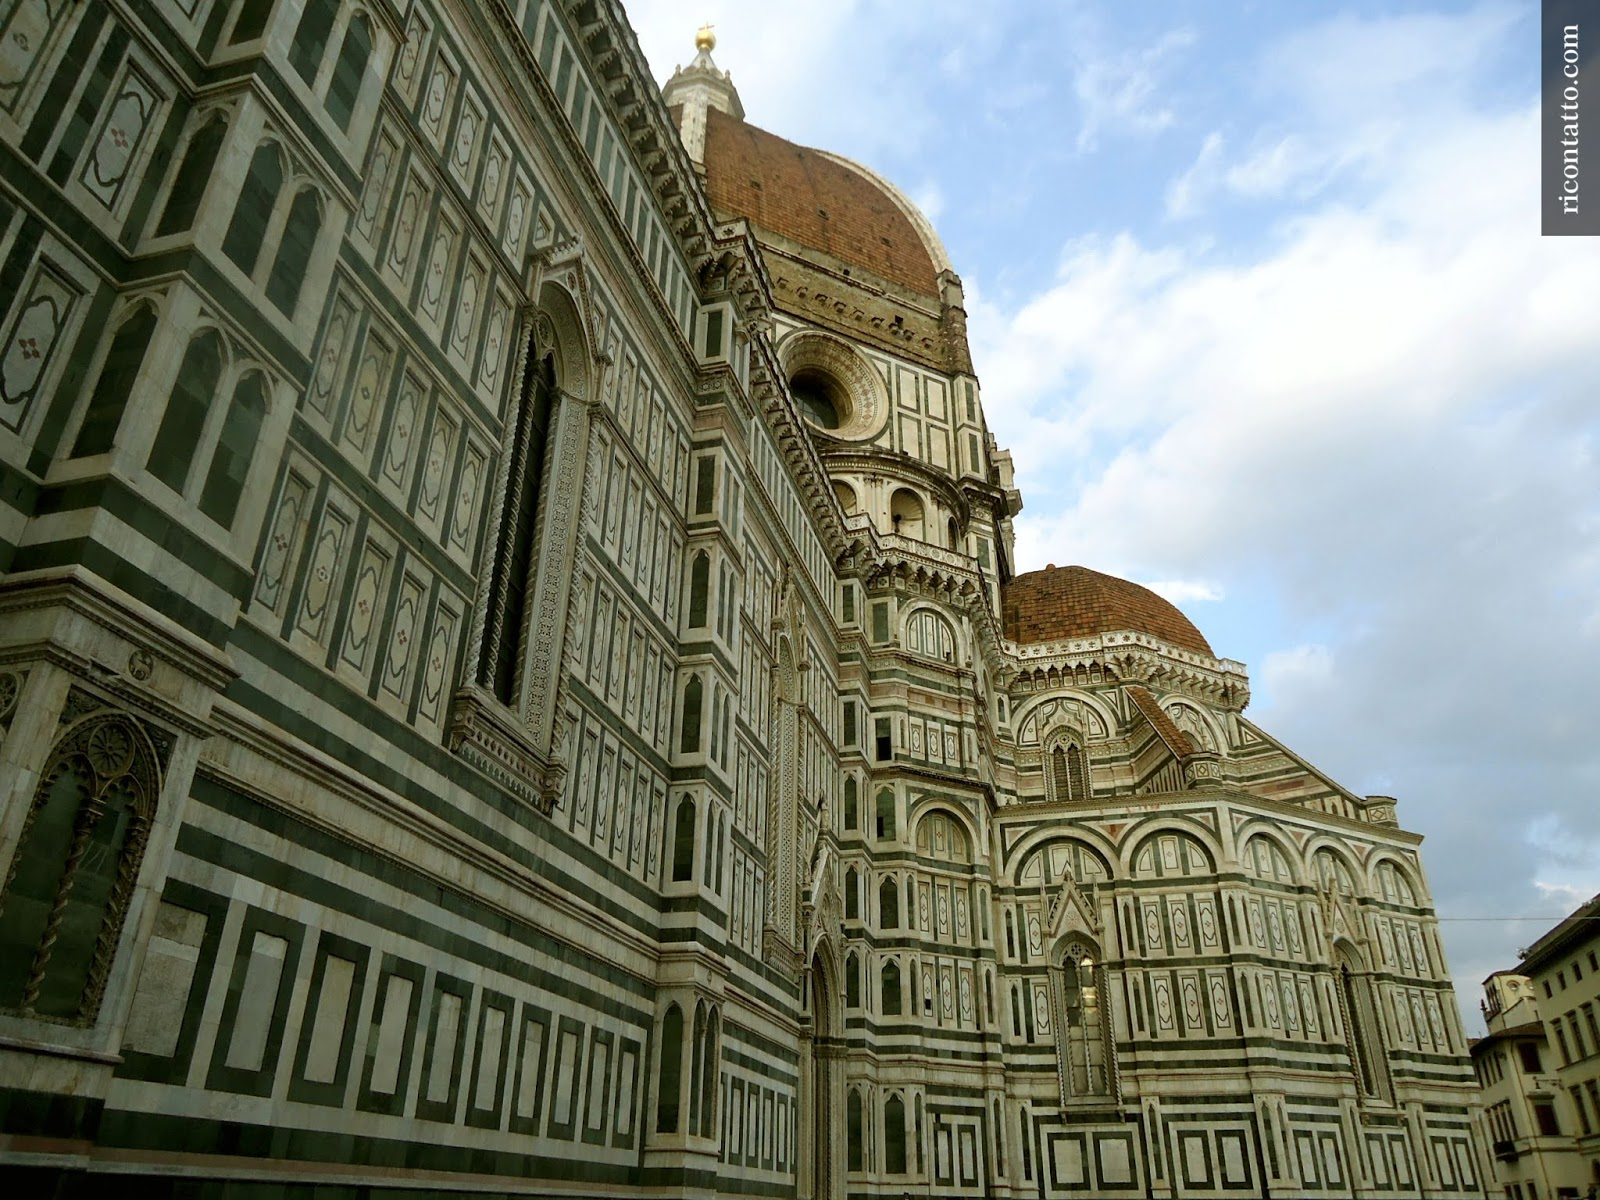 Firenze, Toscana, Italy - Photo #02 by Ricontatto.com